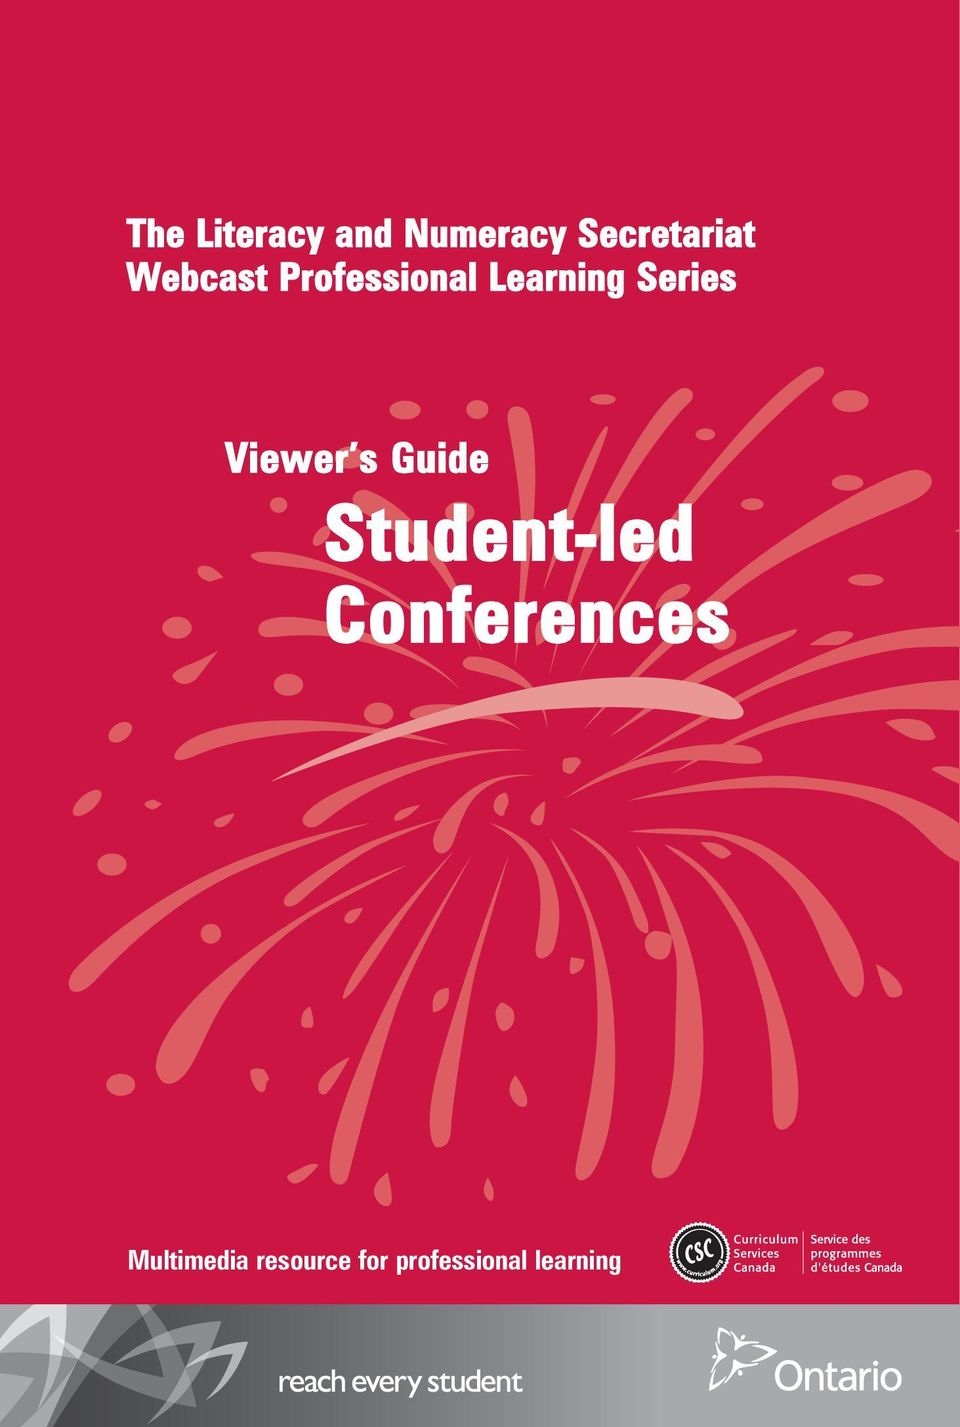 Viewer s Guide Student-led Conferences